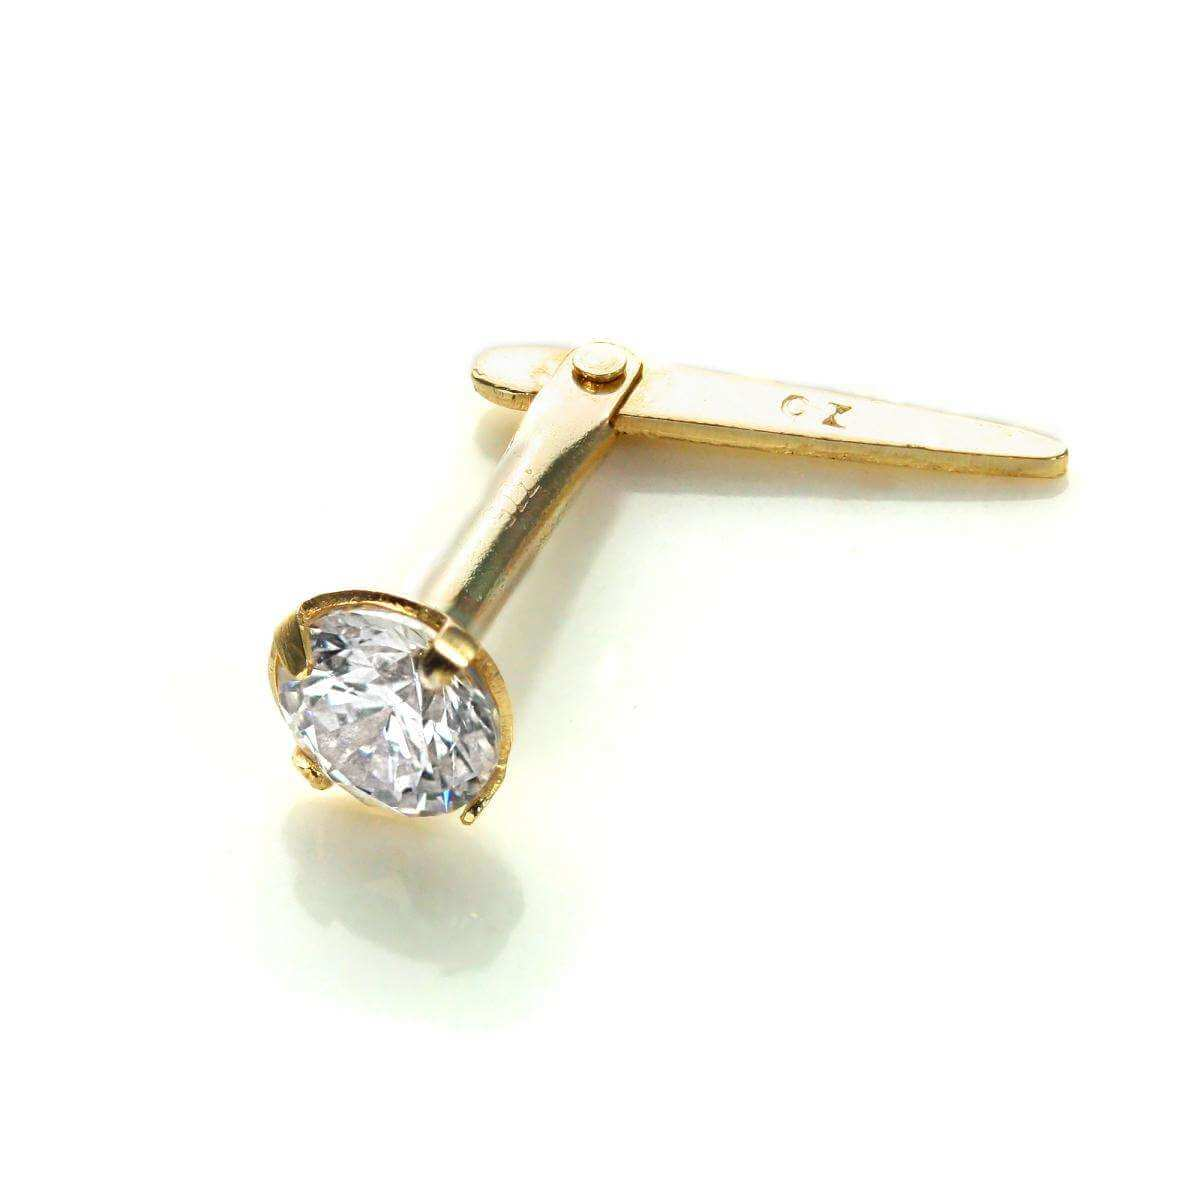 Andralok 9ct Yellow Gold Clear CZ 3mm Round Nose Stud